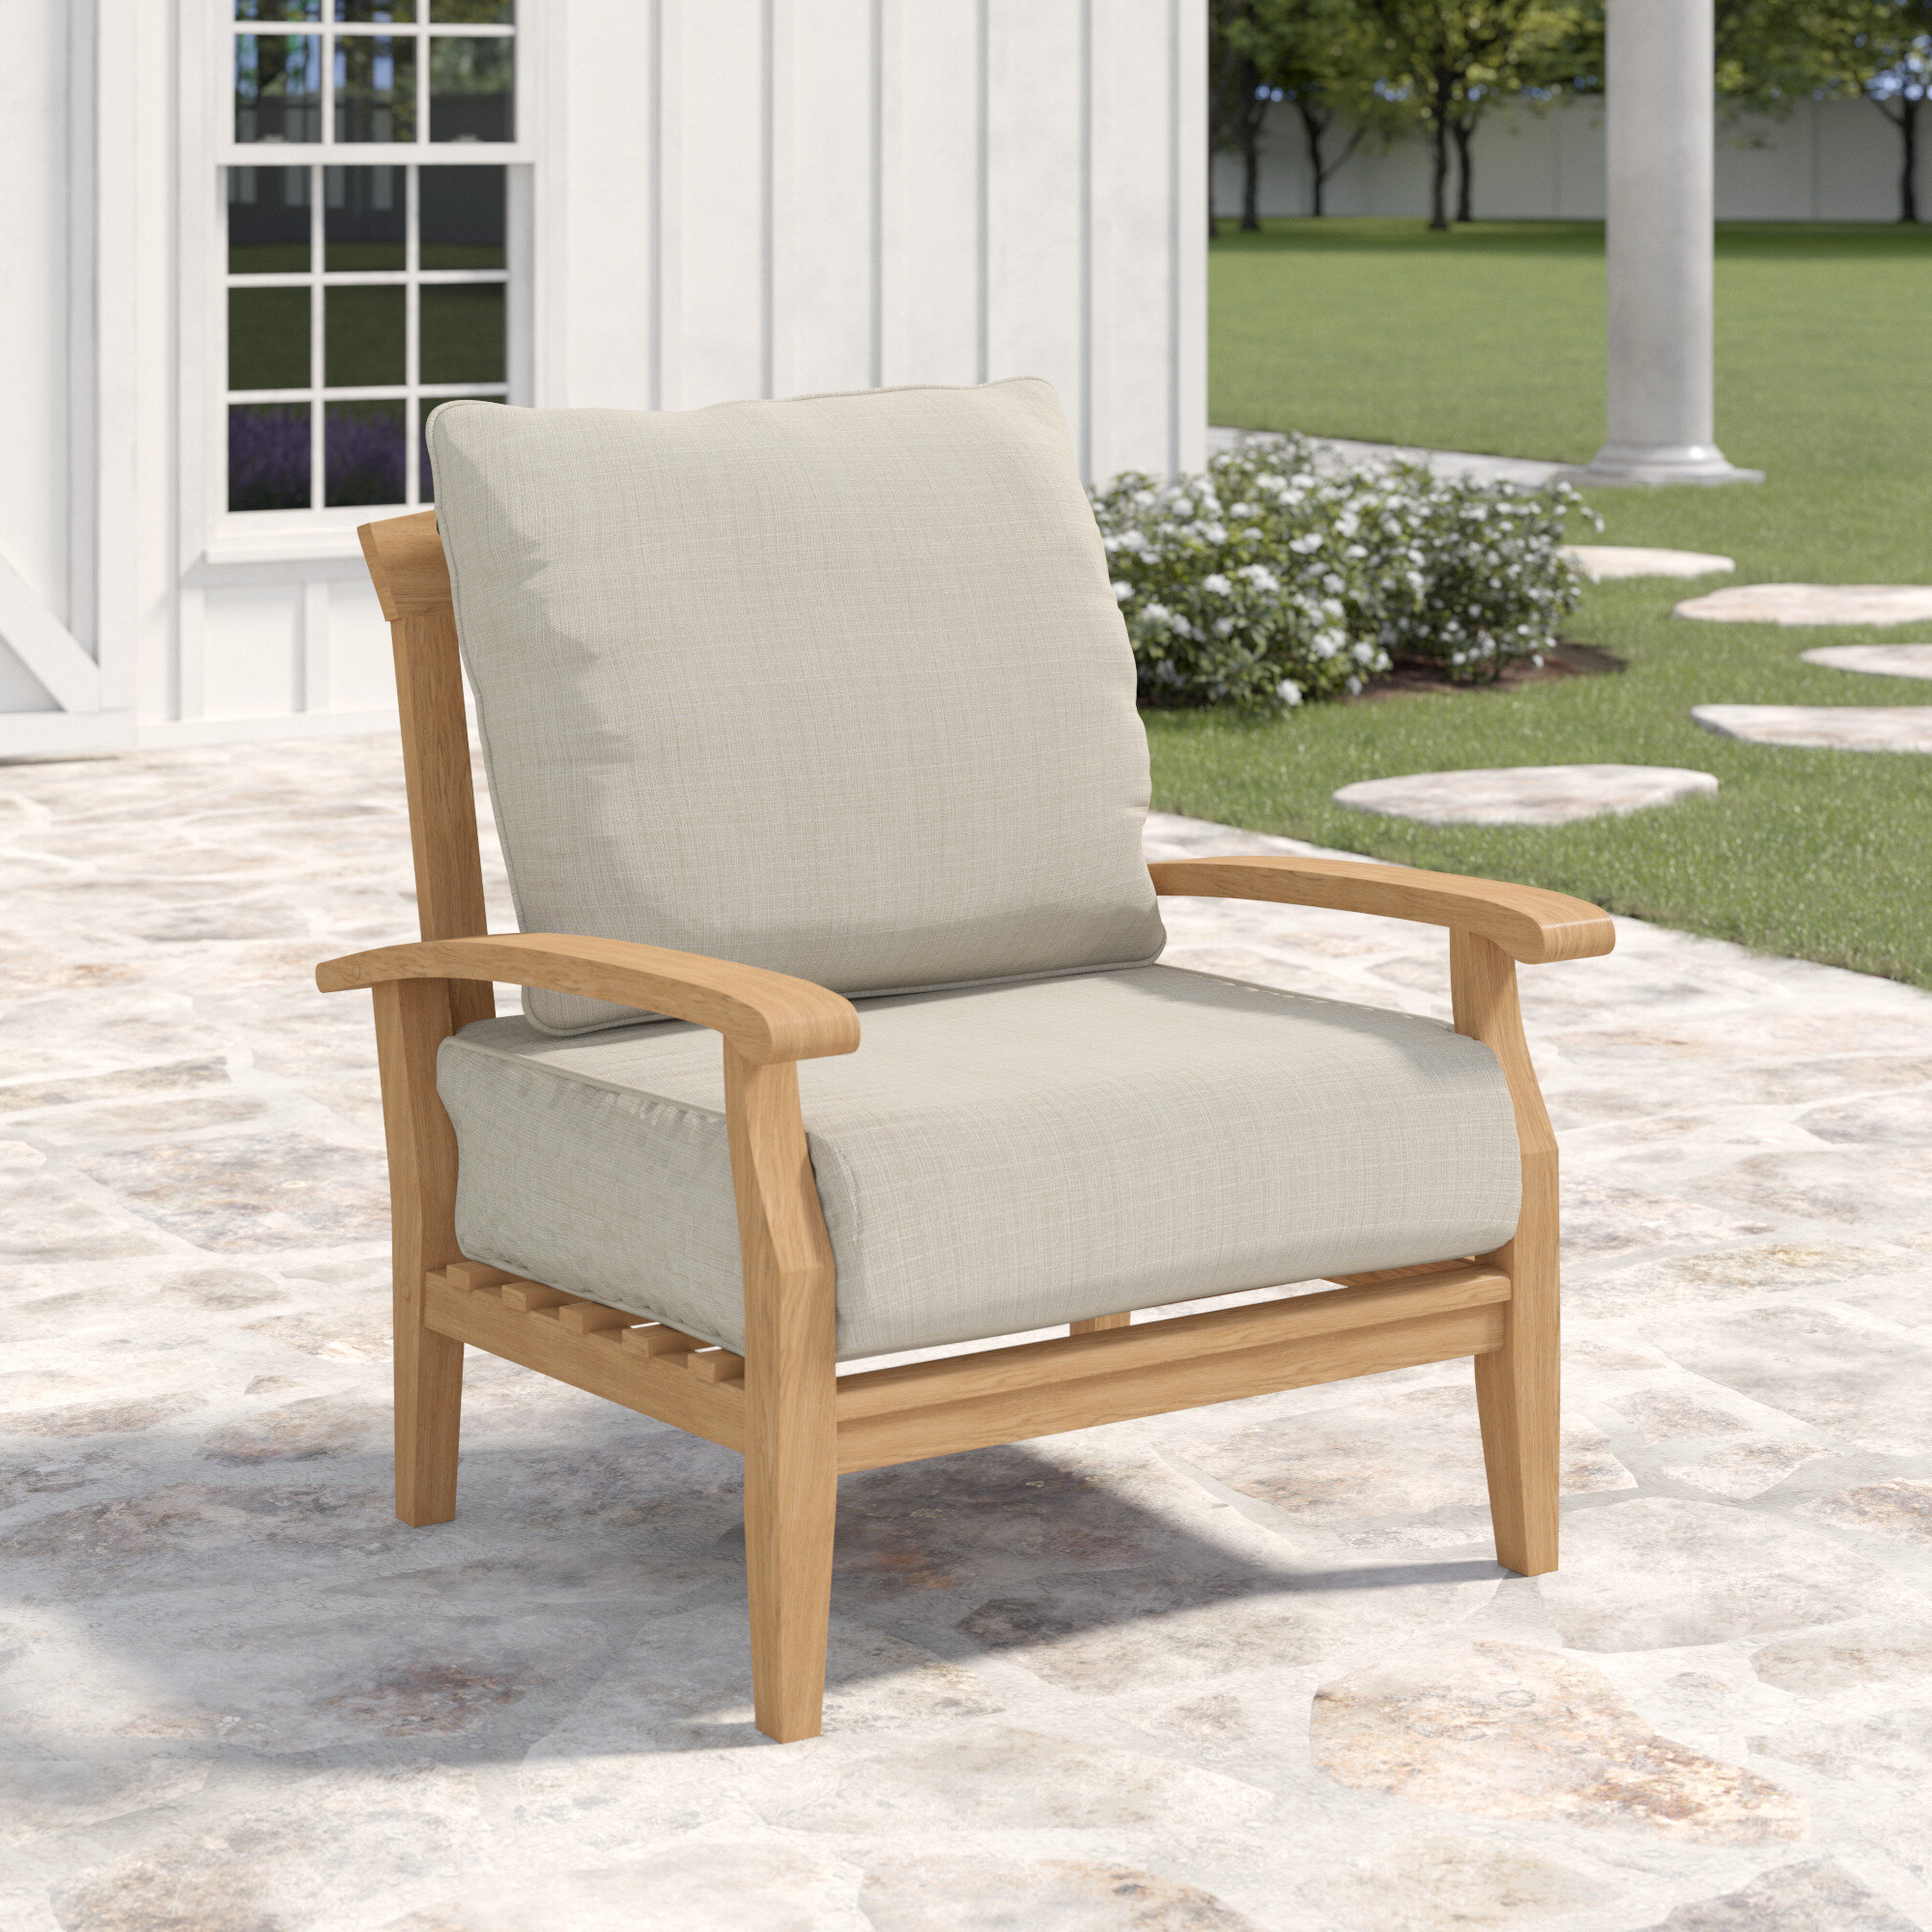 2020 Summerton Teak Patio Sofas With Cushions Regarding Summerton Teak Patio Chair With Cushions (Gallery 2 of 20)